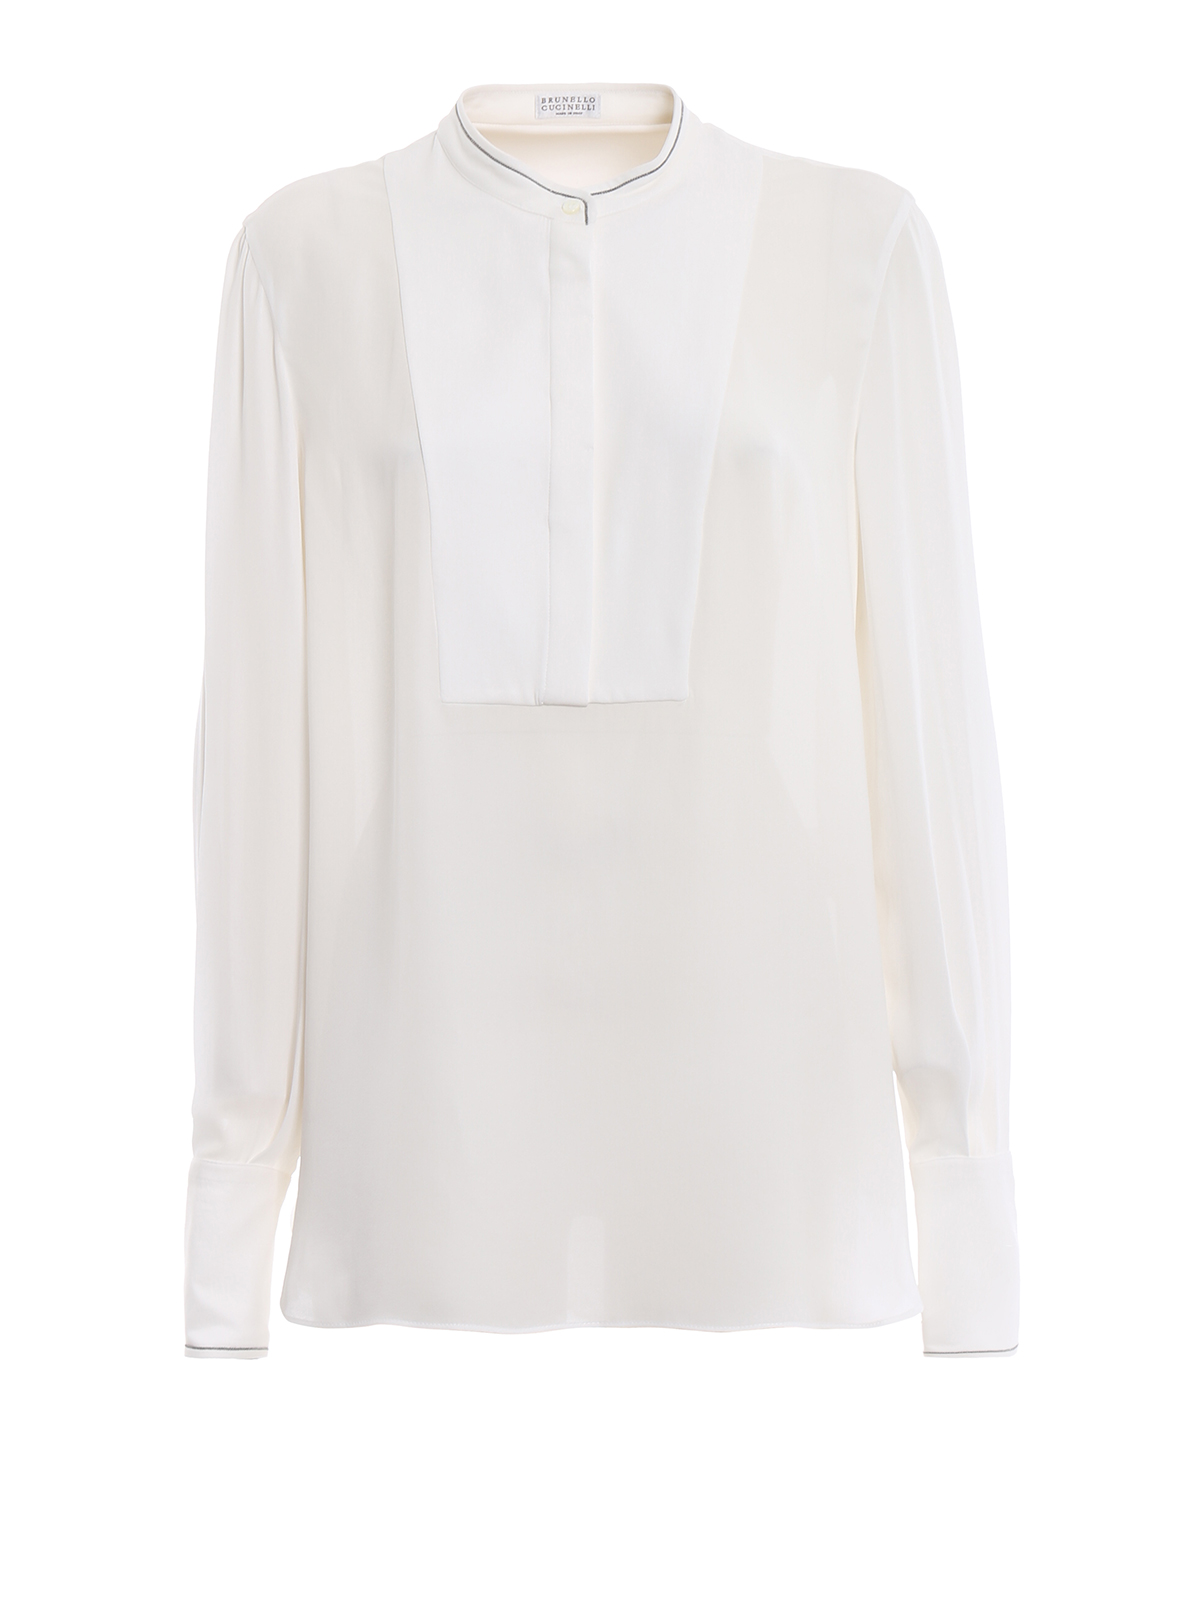 1ee1c48c559039 White Silk Blouse With Black Trim | Lauren Goss